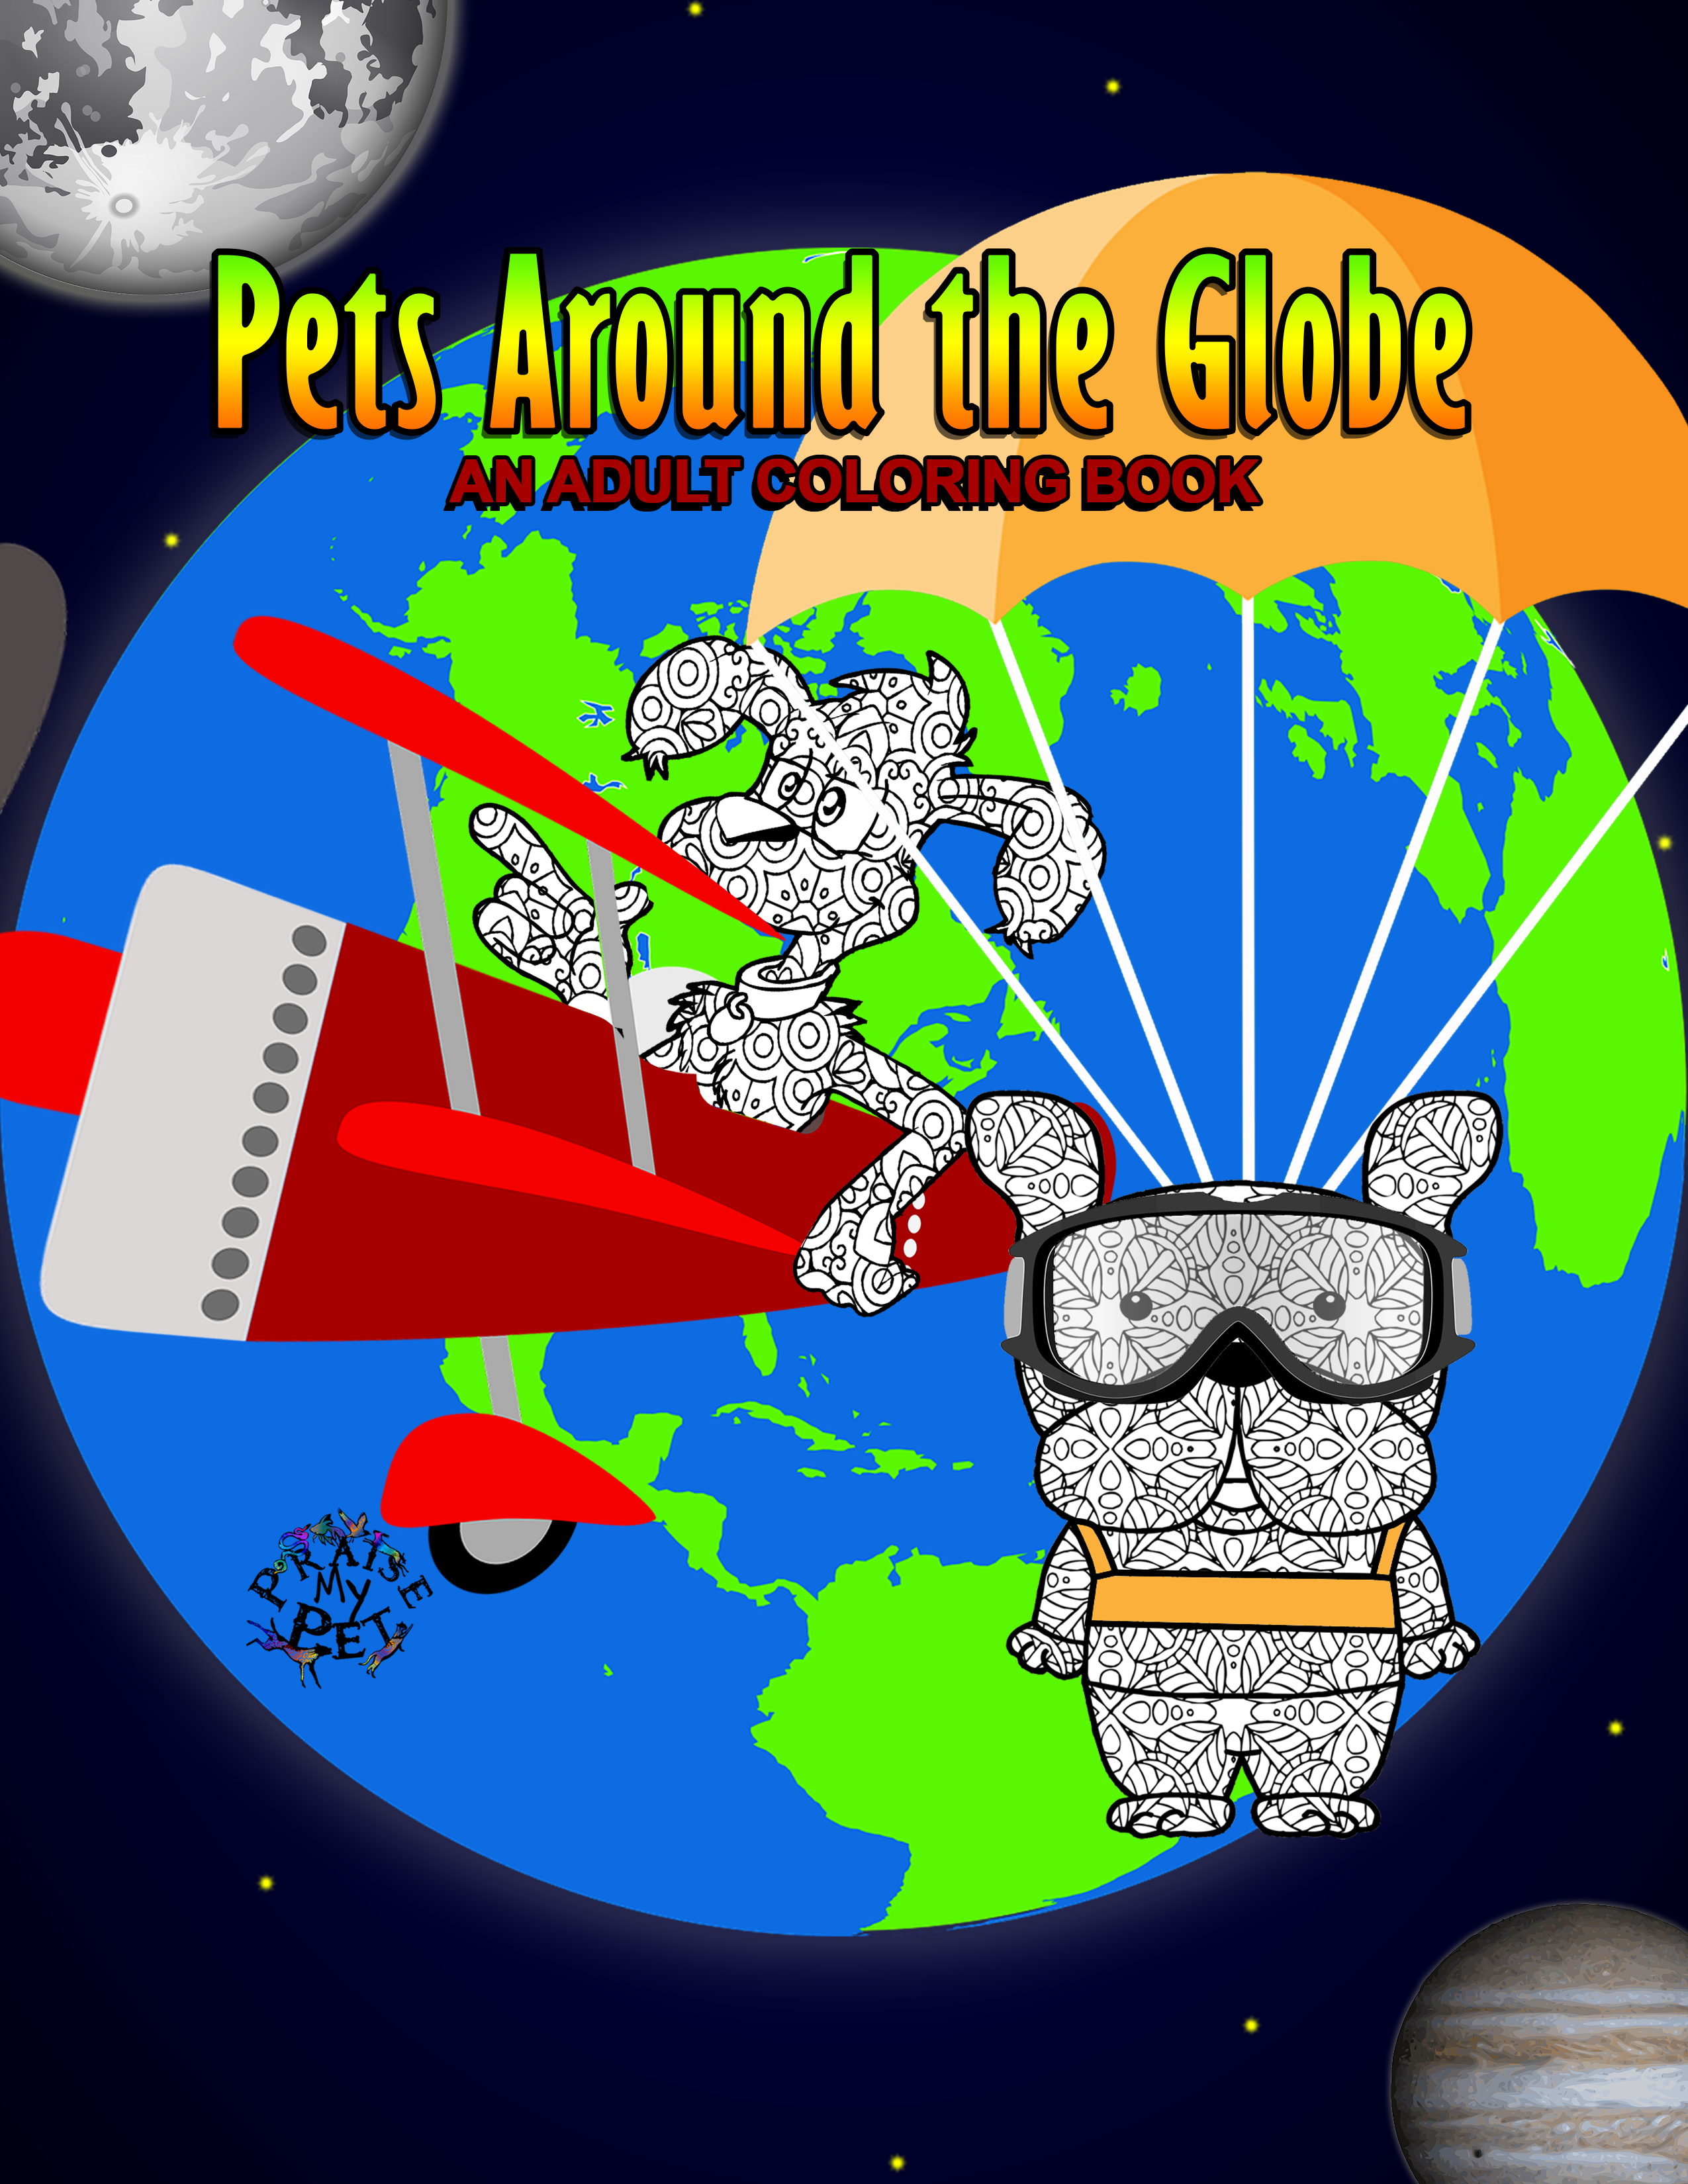 Pets Around the Globe: Adult's Coloring Book